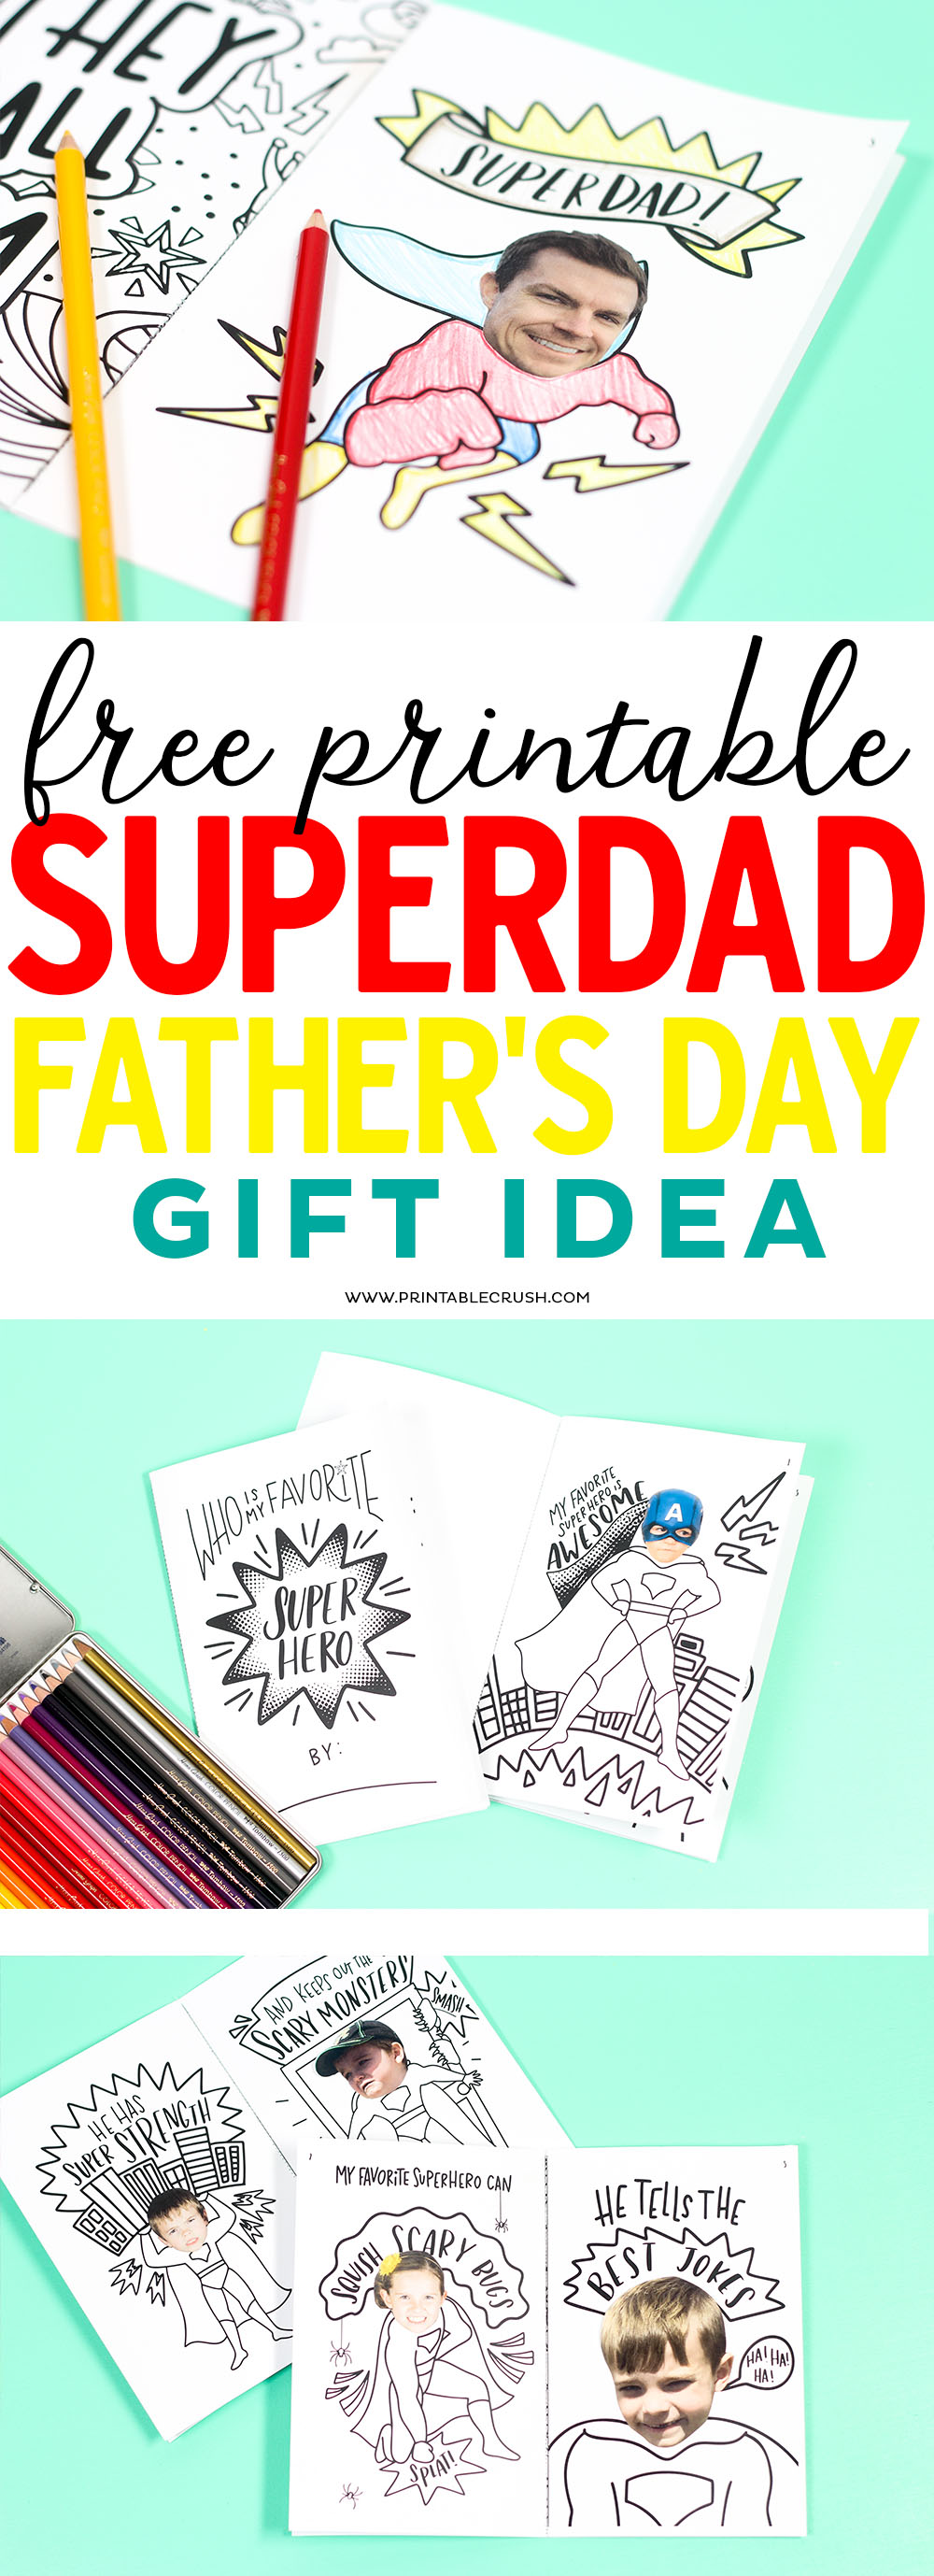 Superdad Father S Day Gift Idea Printable Crush